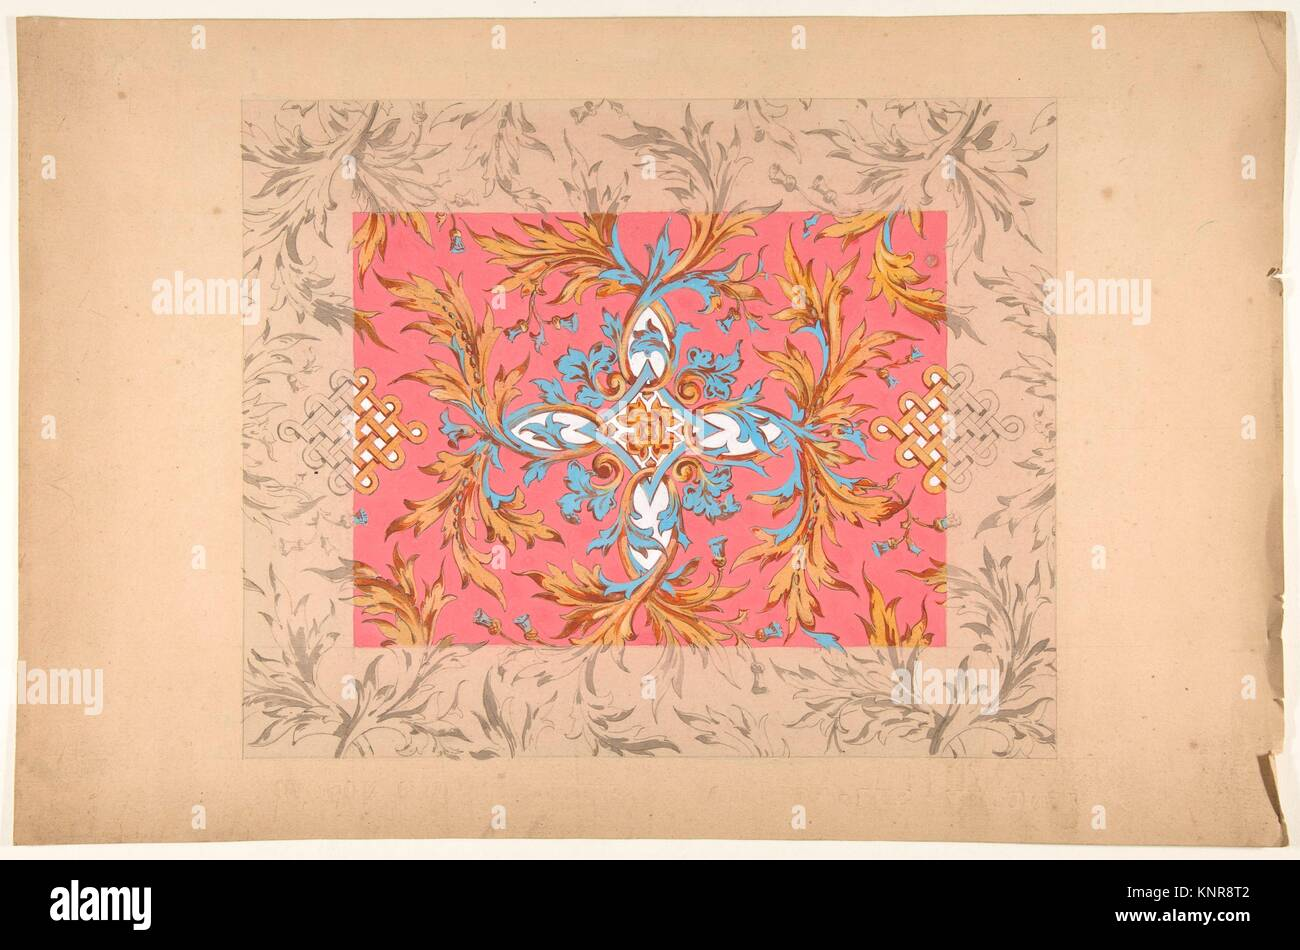 Design for a ceiling with floral design. Artist: Jules-Edmond-Charles Lachaise (French, died 1897); Artist: Eugène - Stock Image